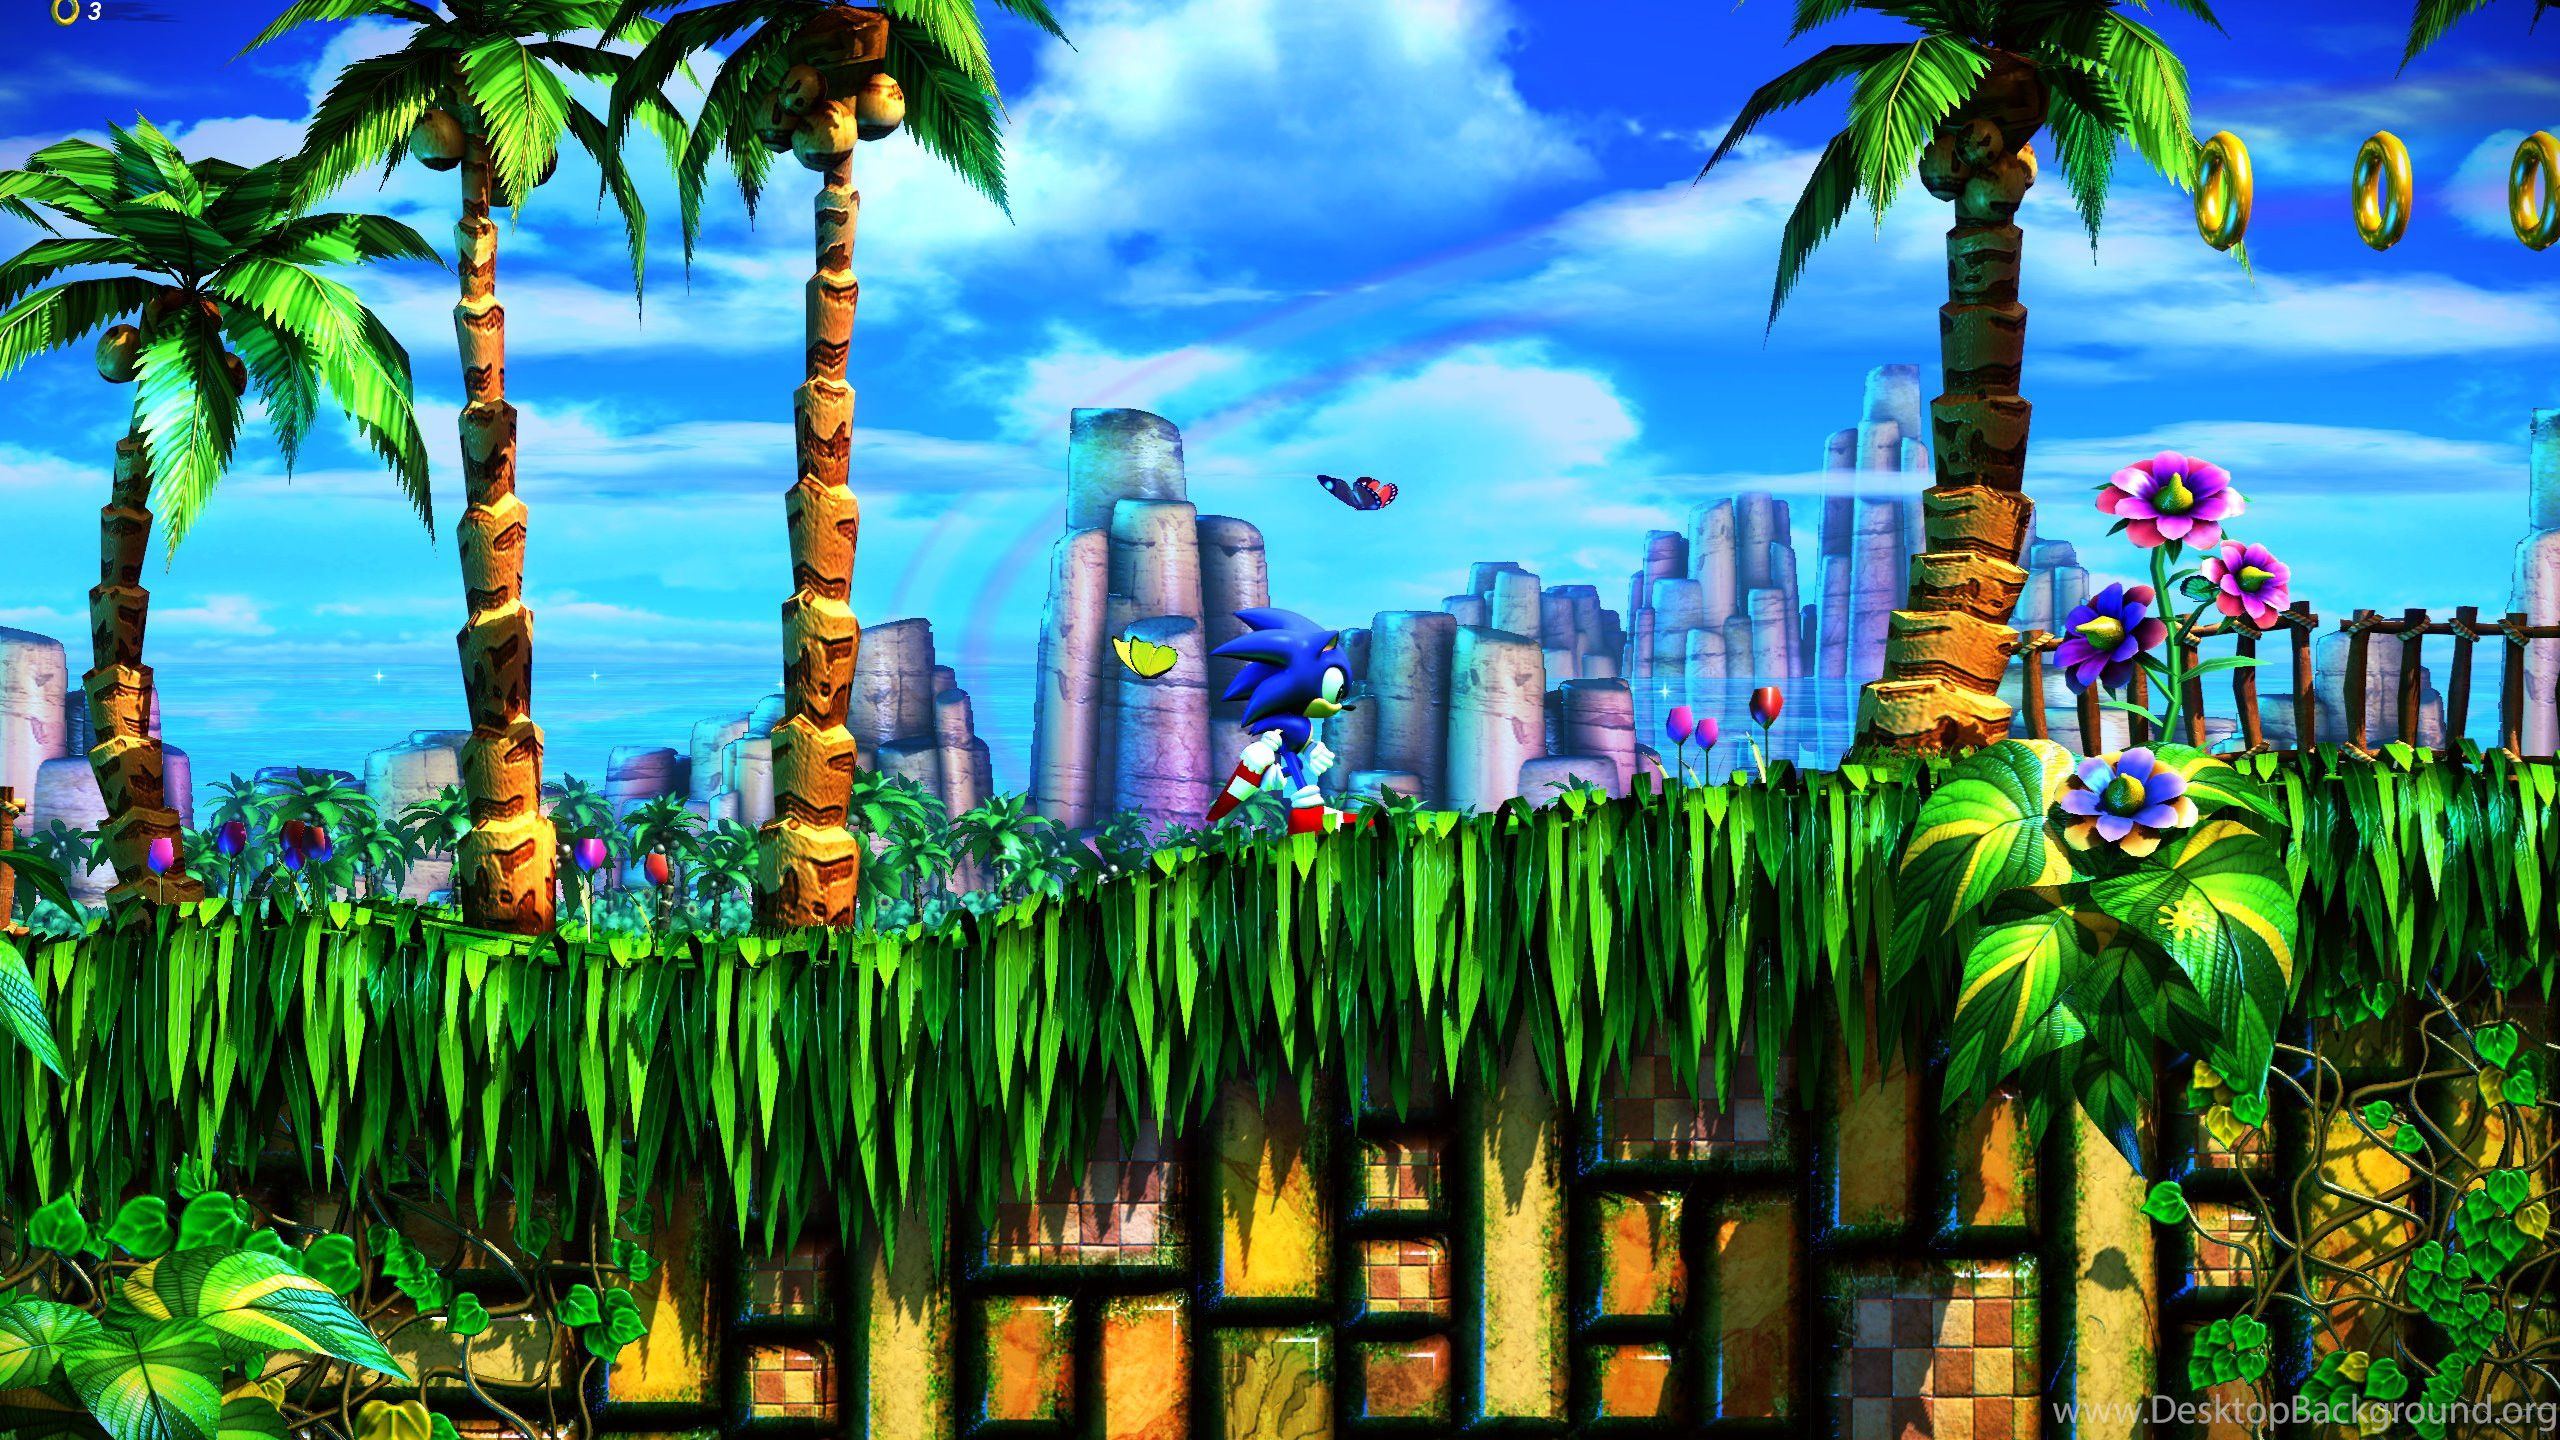 Green Hill Zone Wallpapers Top Free Green Hill Zone Backgrounds Wallpaperaccess